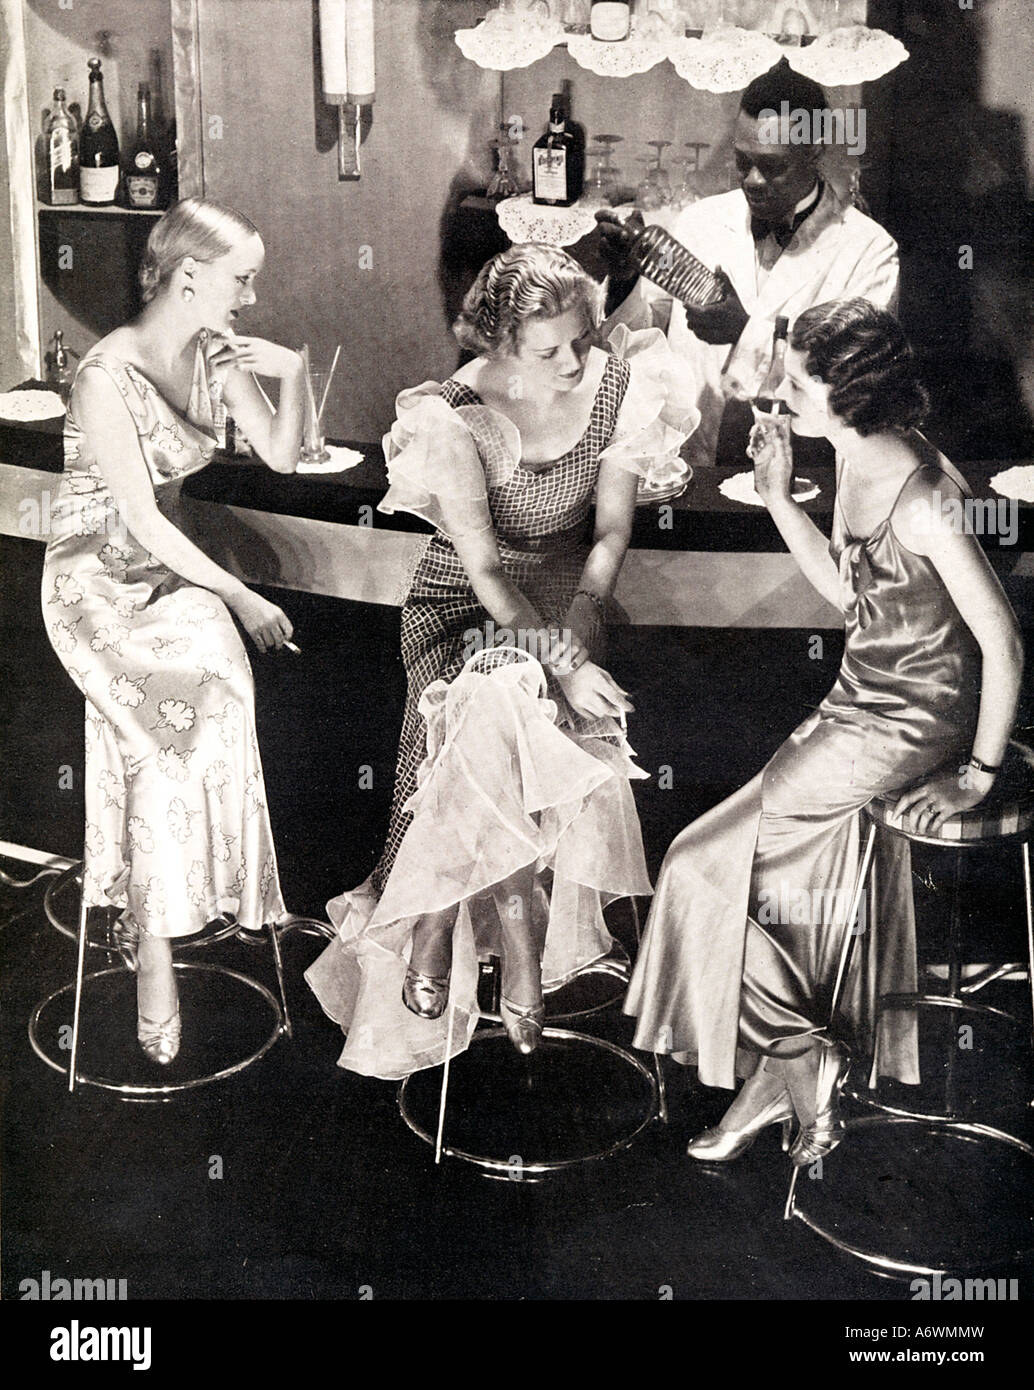 Cocktail Bar 1934 Fashion Photo Of Three Evening Gowned Ladies Waiting At The For Their